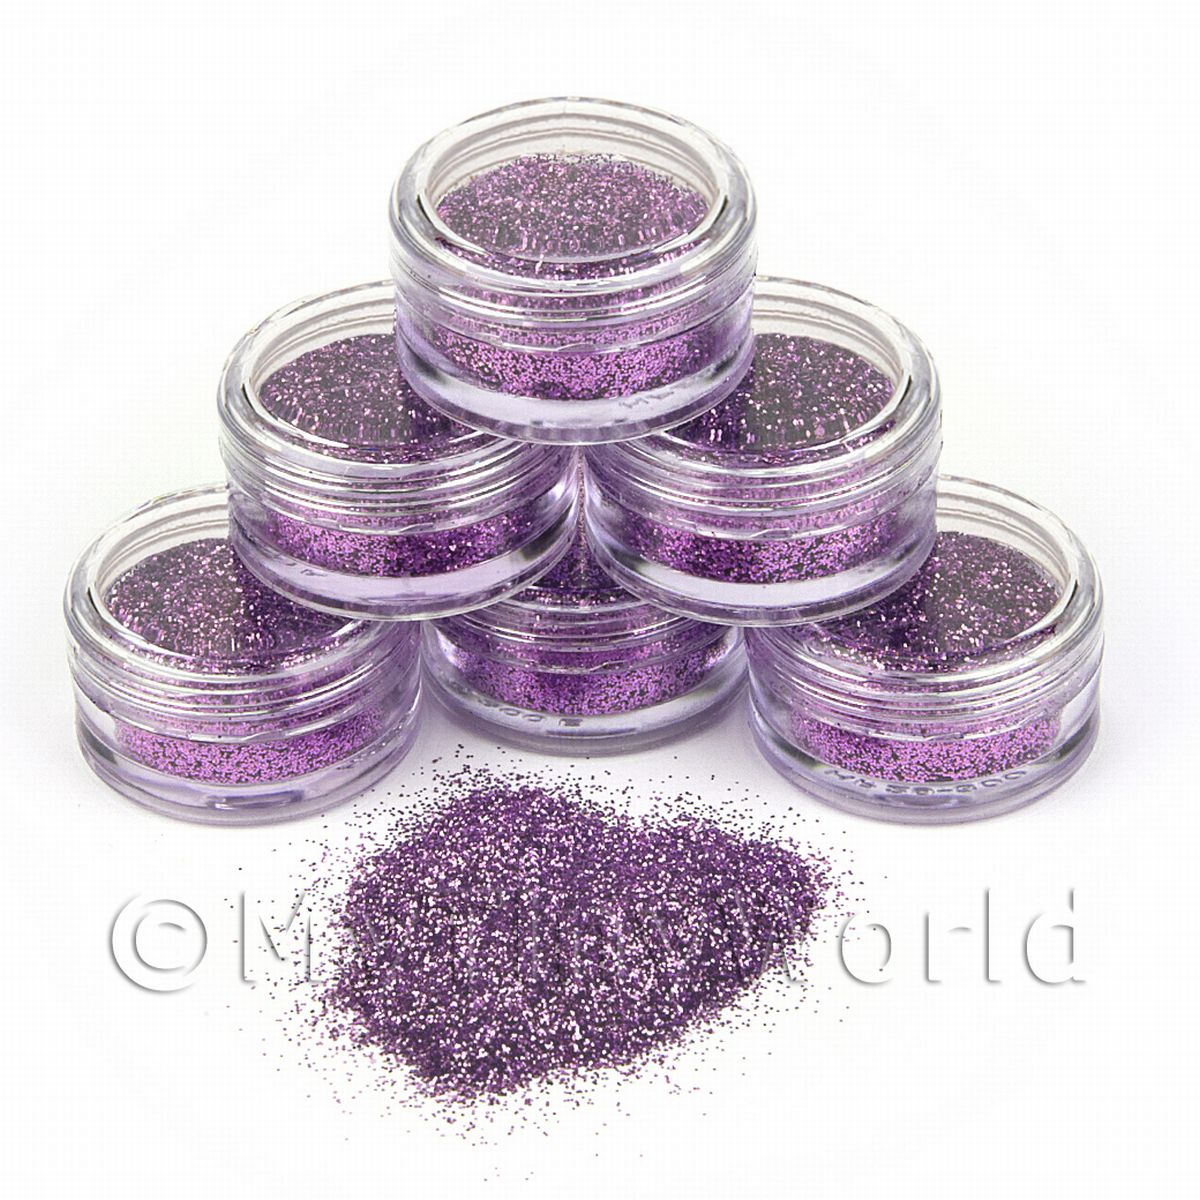 High Quality Nail Art Glitter - 2g Pot - Lovely Lilac